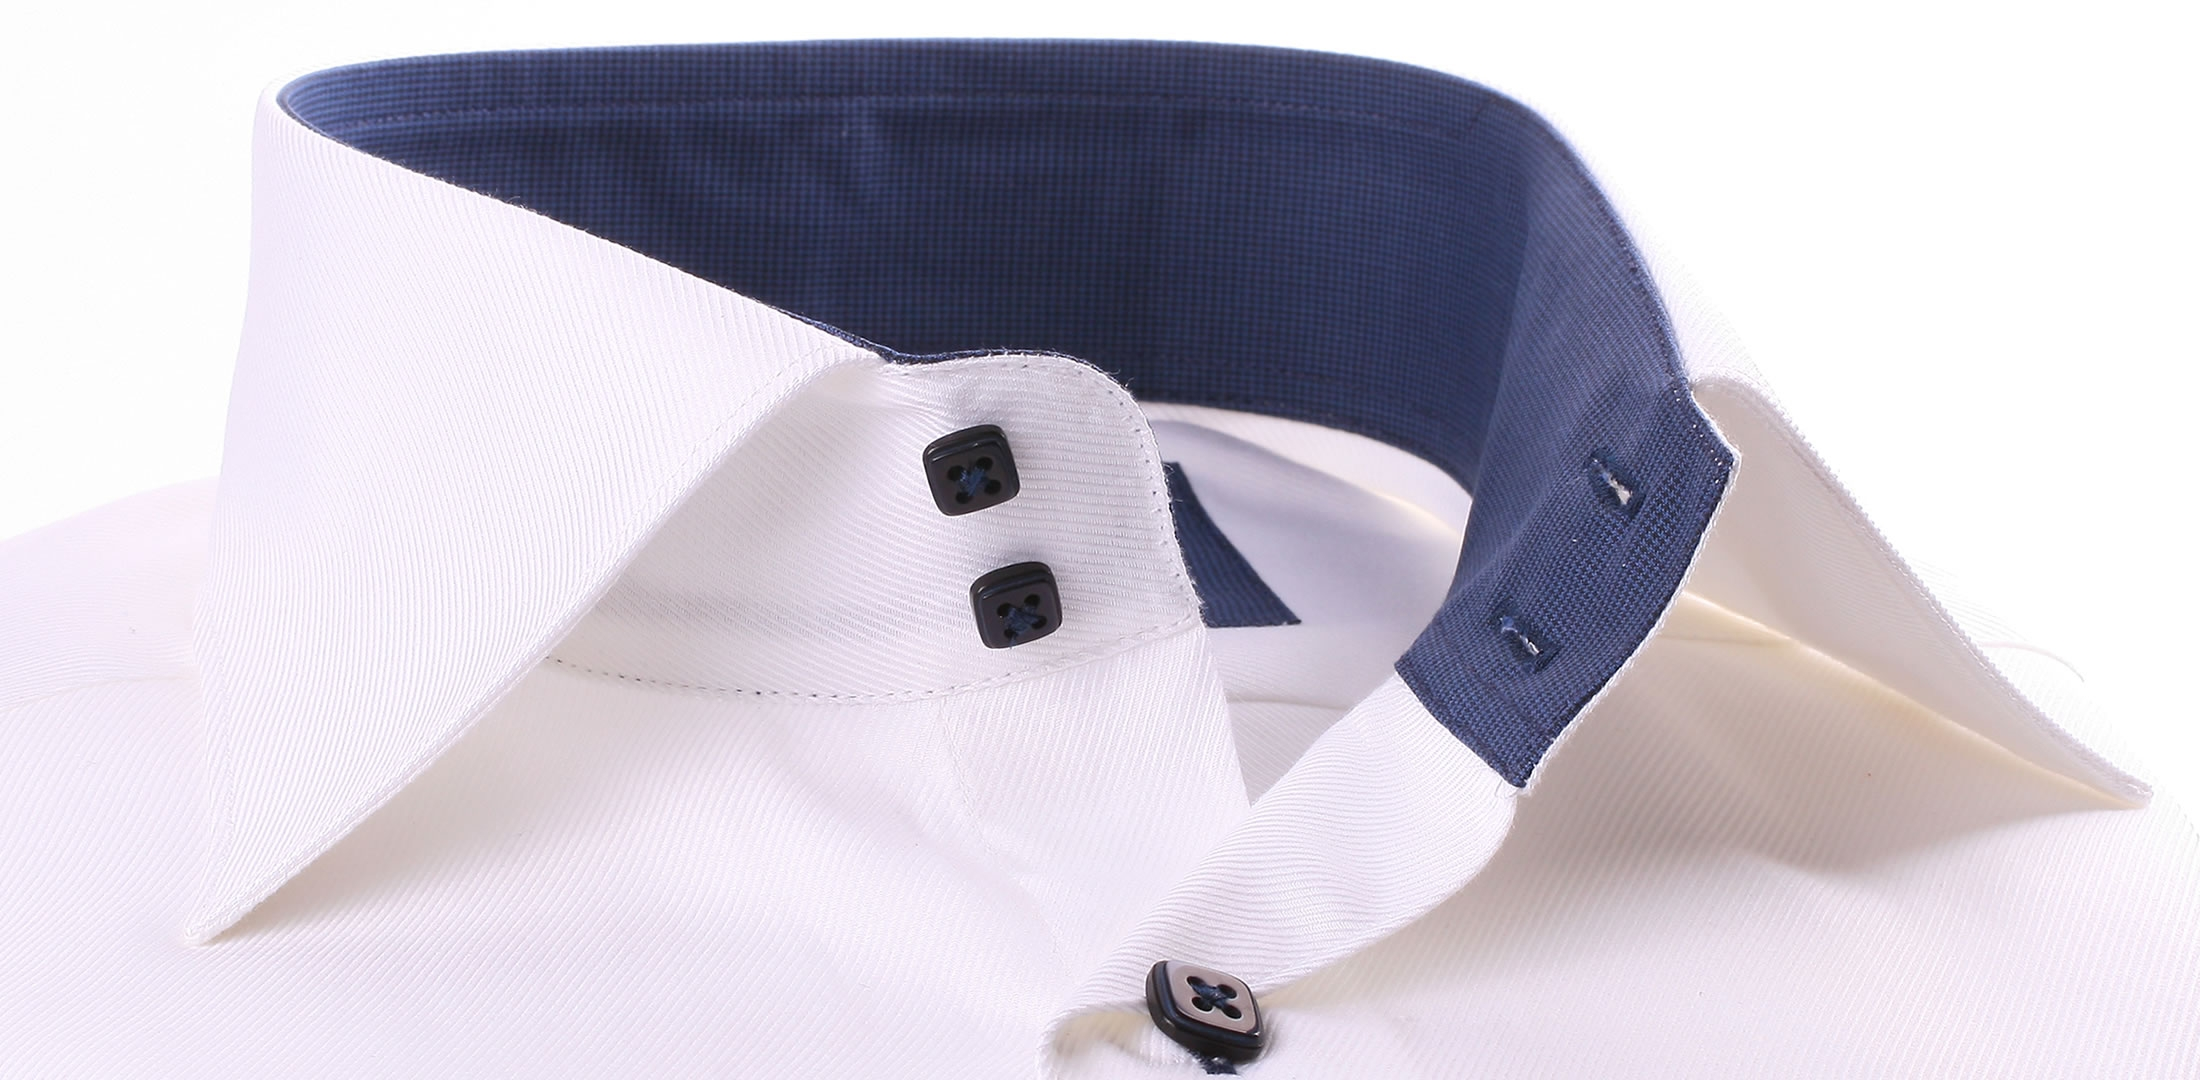 blue collar dating white collar White collar dating blue collar because success in a white-collar office blue collar dating app is essentially a matter would you date a blue collar worker white collar dating blue collar of public relations, professional life has an unfortunate tendency to whitewash one's.